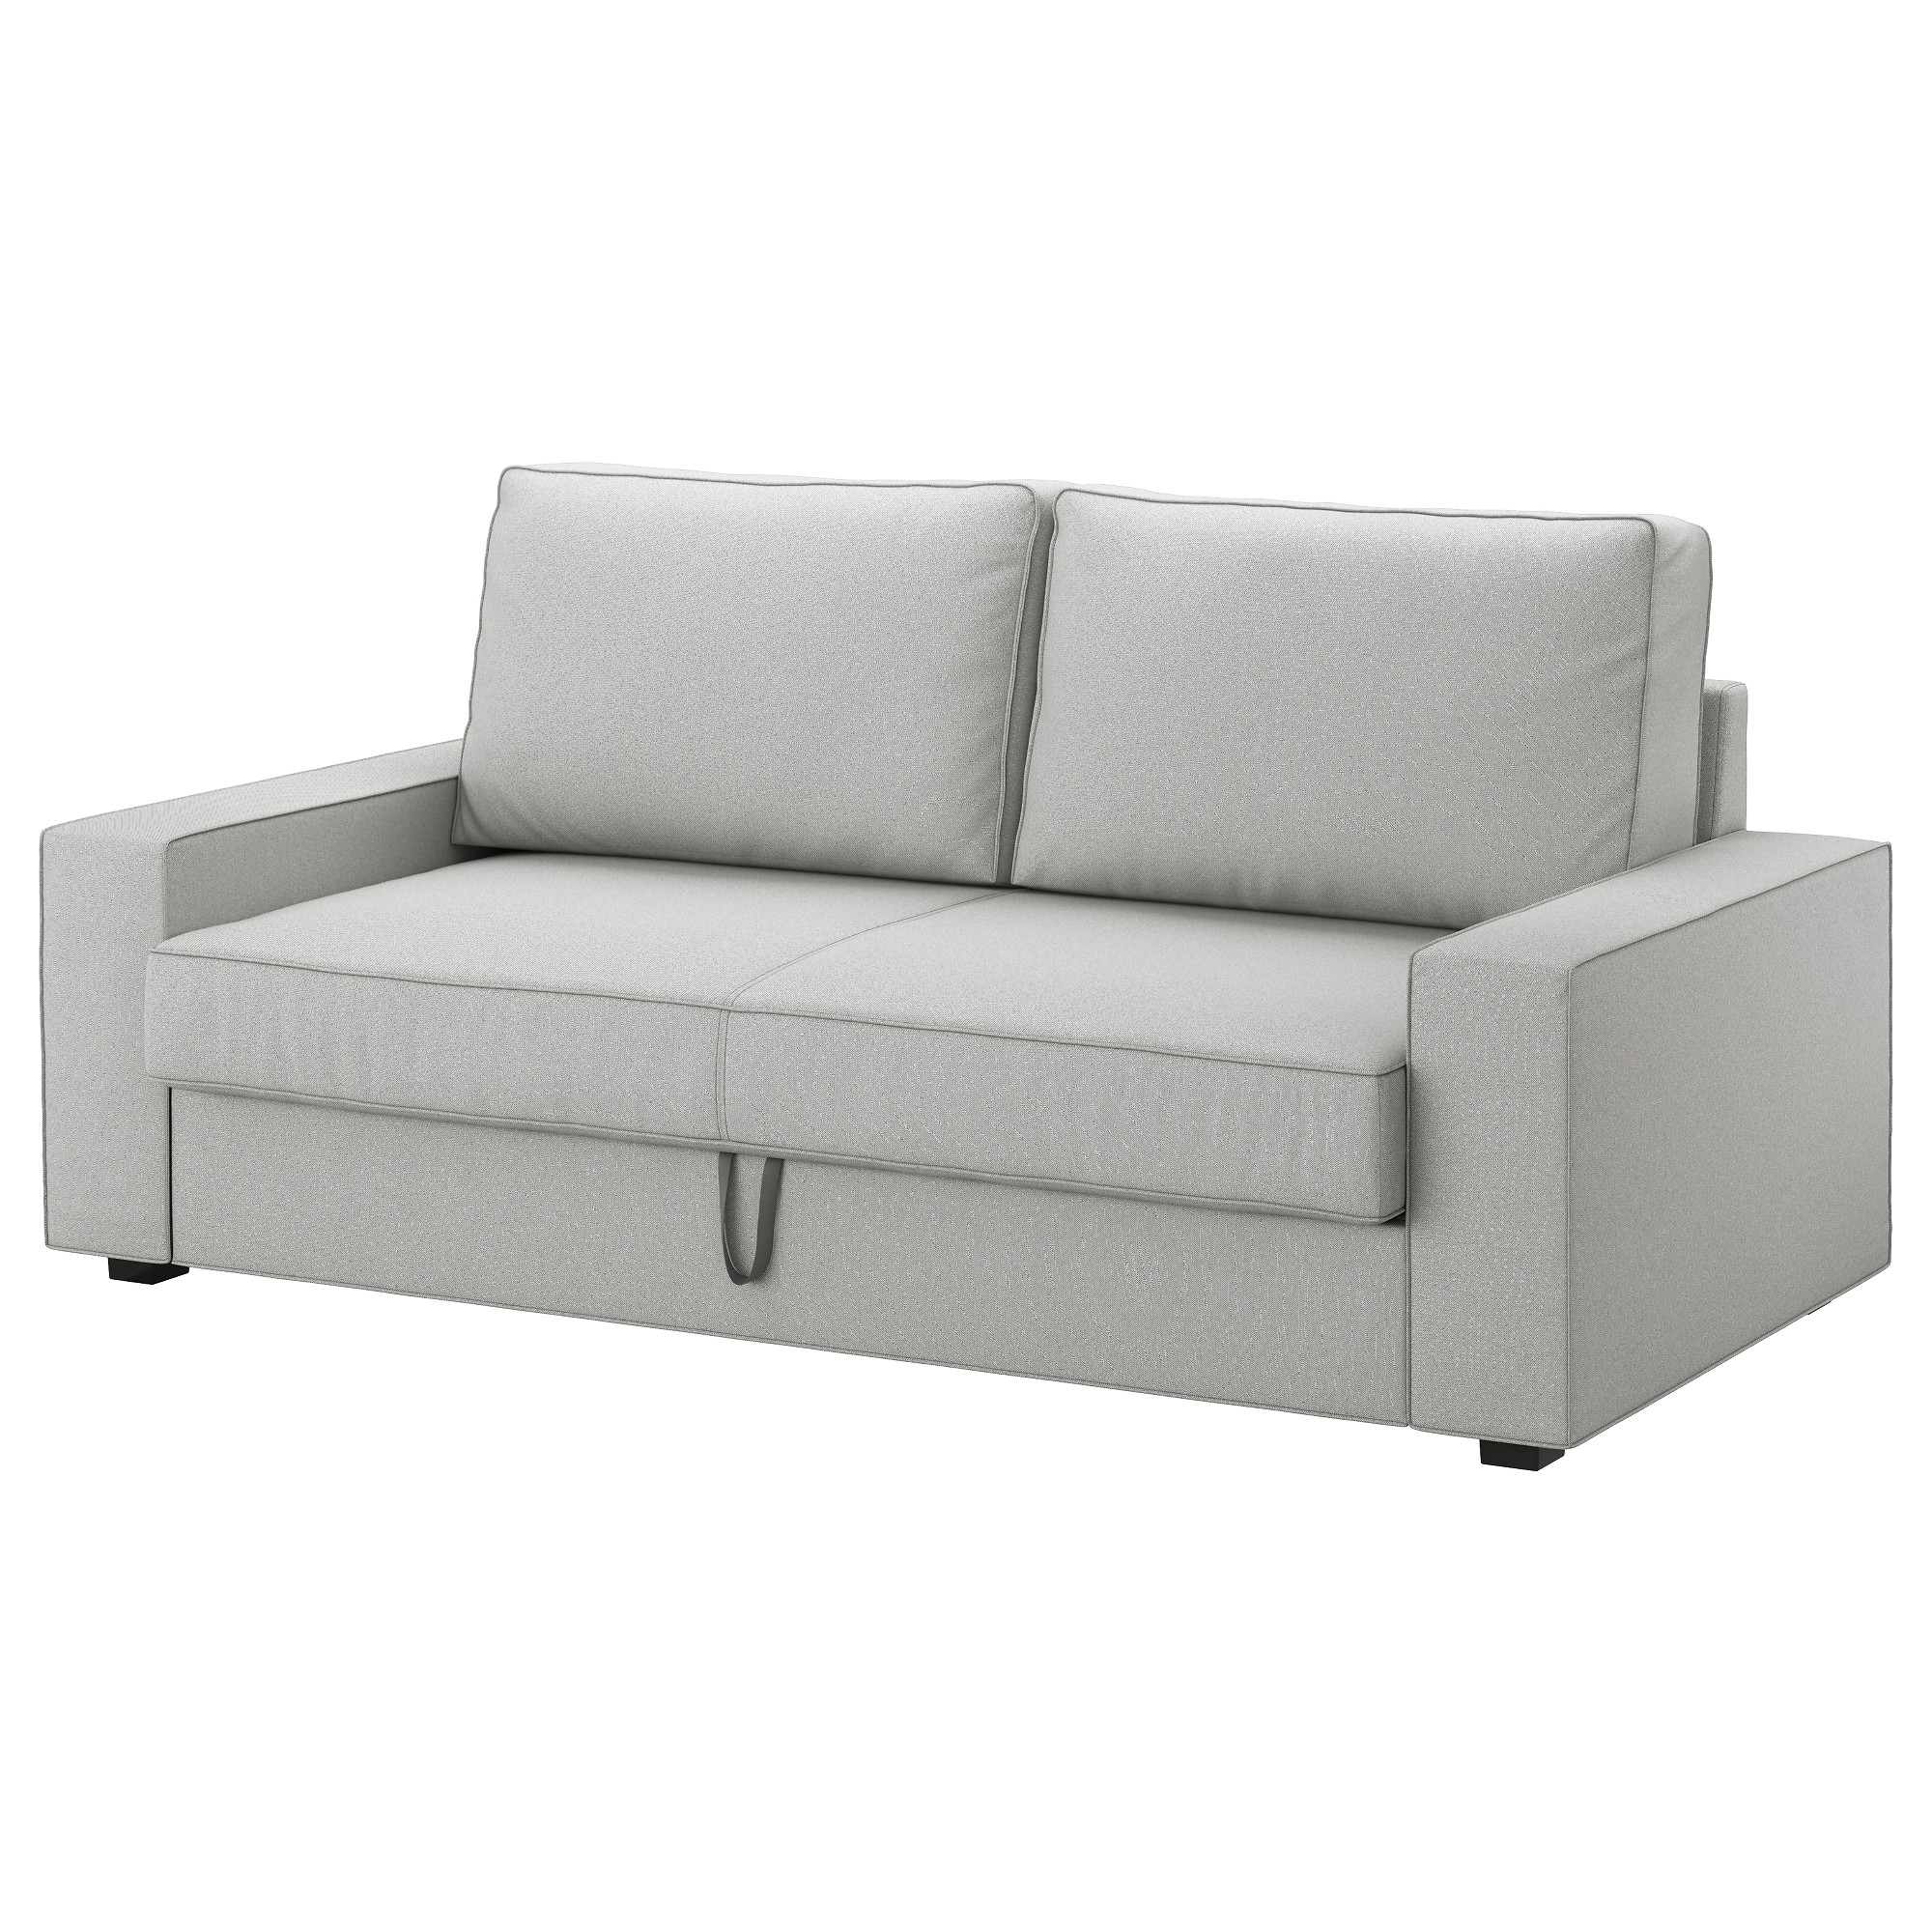 Schlafsofa jugendzimmer ikea for Bettsofa schlafsofa